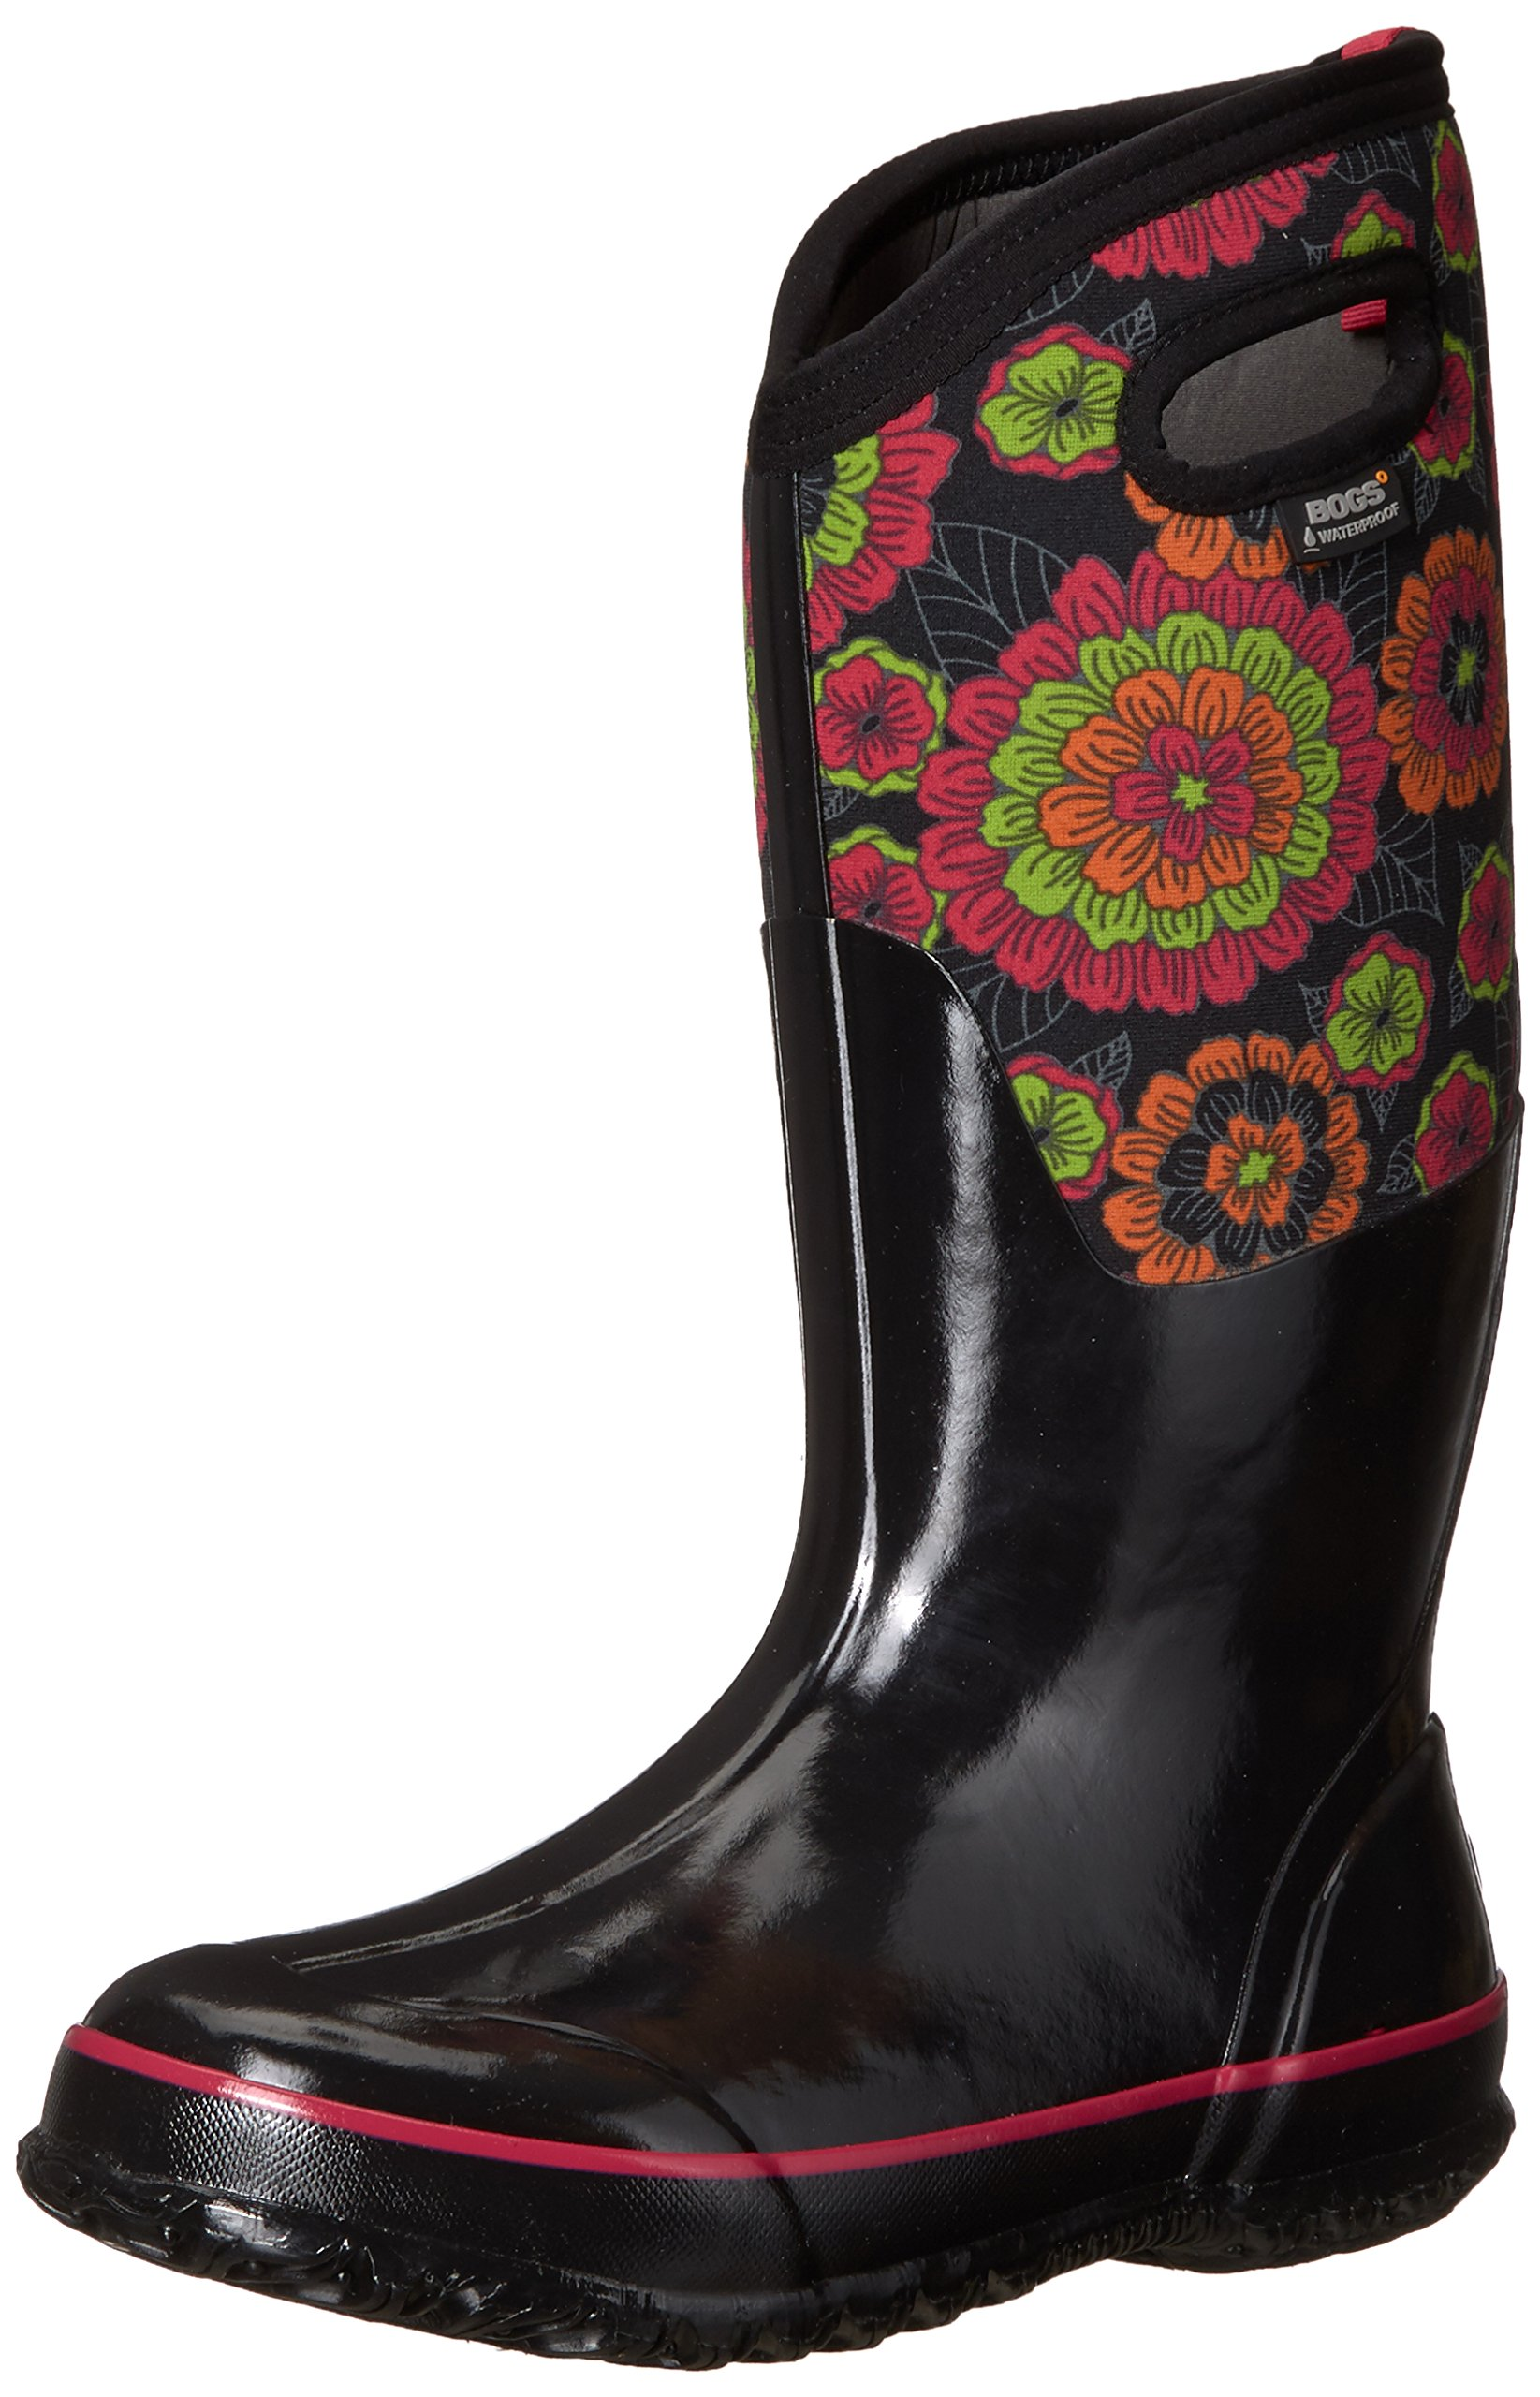 Bogs Women's Classic Pansies Snow Boot, Black/Multi, 6 M US